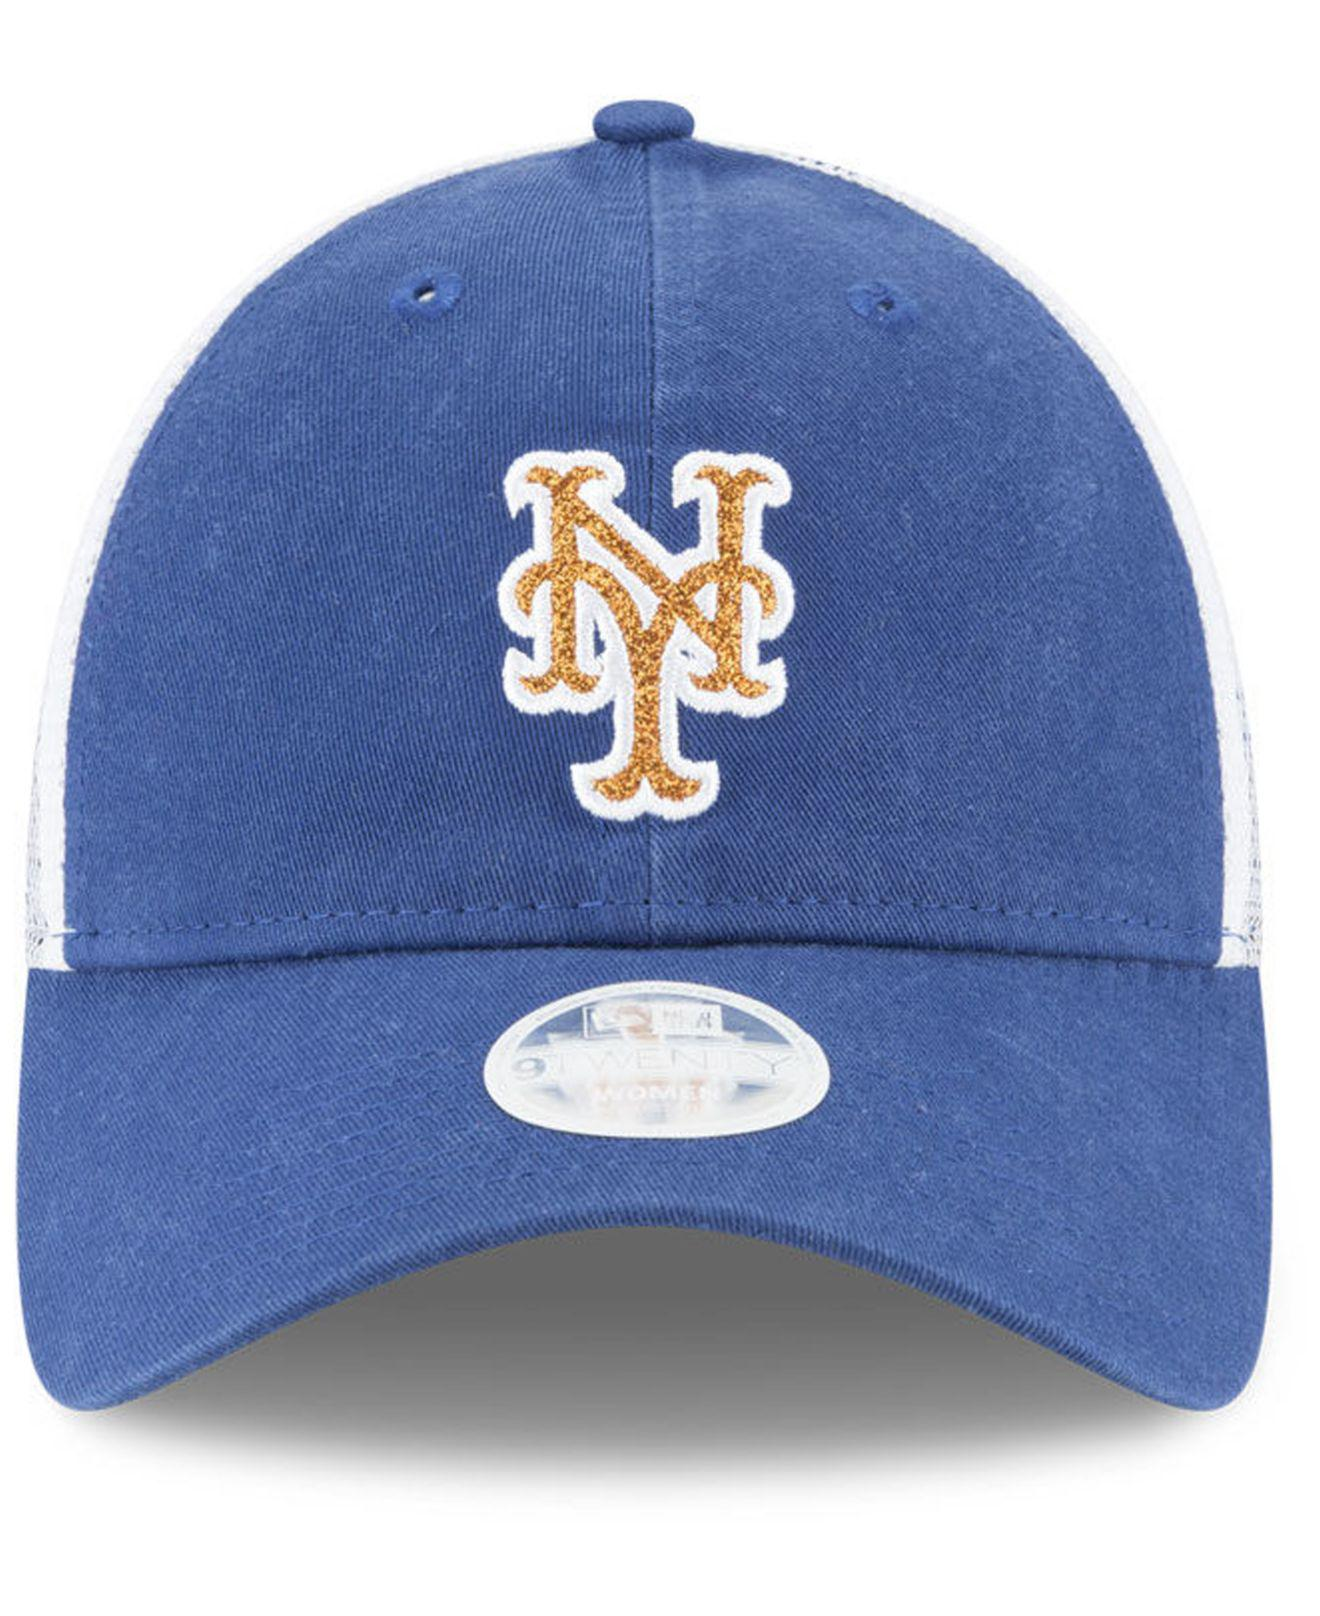 9462d0fffb748 ... low price lyst ktz new york mets trucker shine 9twenty cap in blue for  men 7a6e0